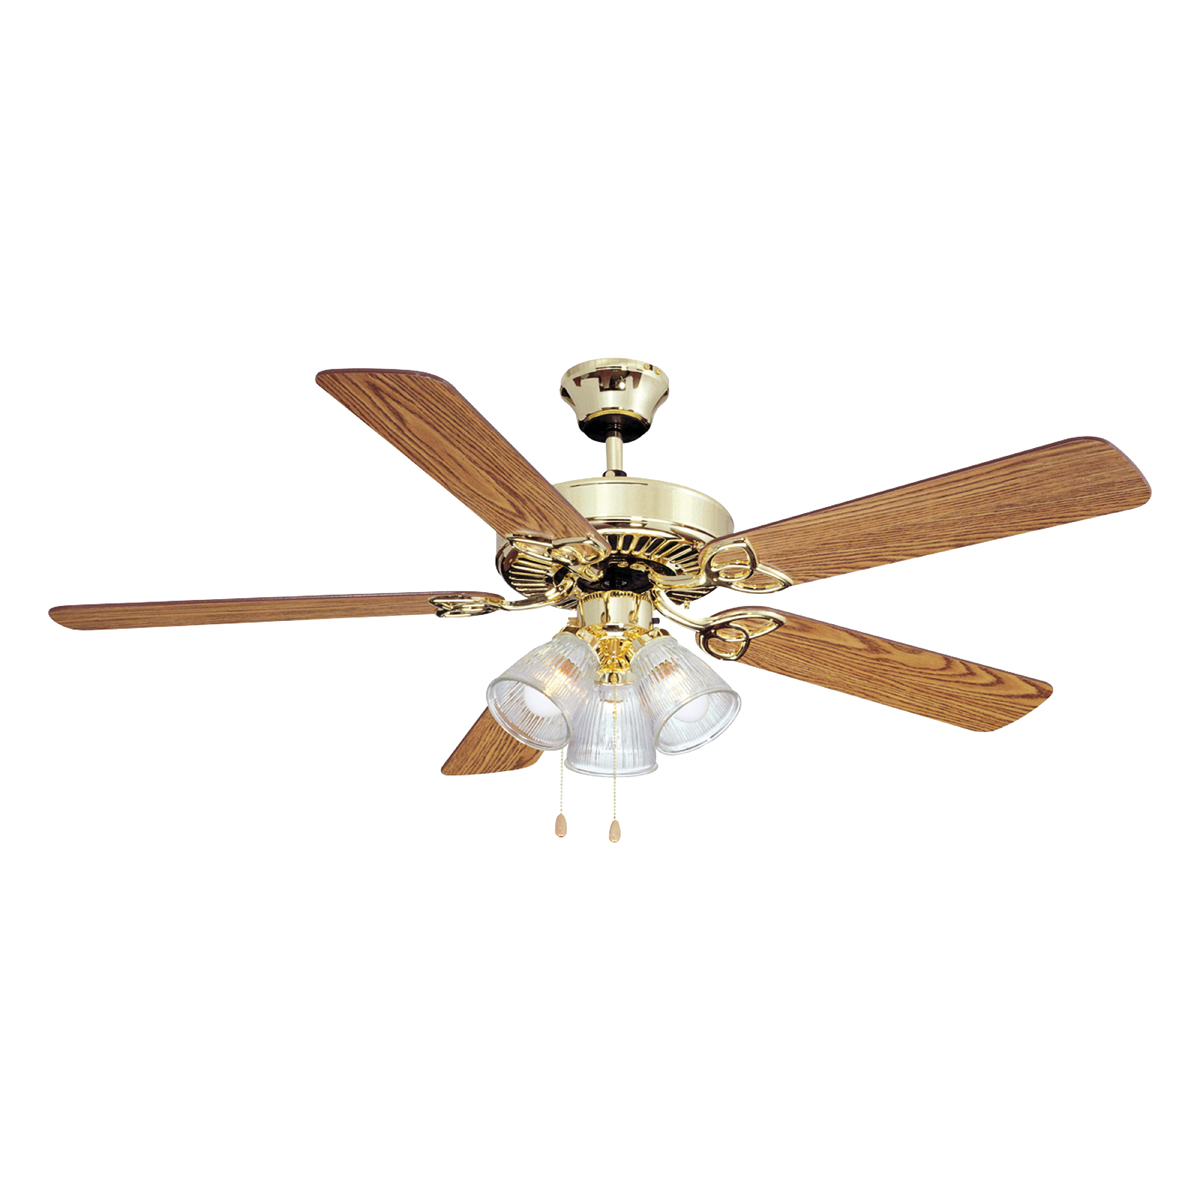 Picture of Boston Harbor CF-78043 Ceiling Fan Light Kit, 0.8 A, 120 V, 5-Blade, 52 in Sweep, 2605 cfm Air